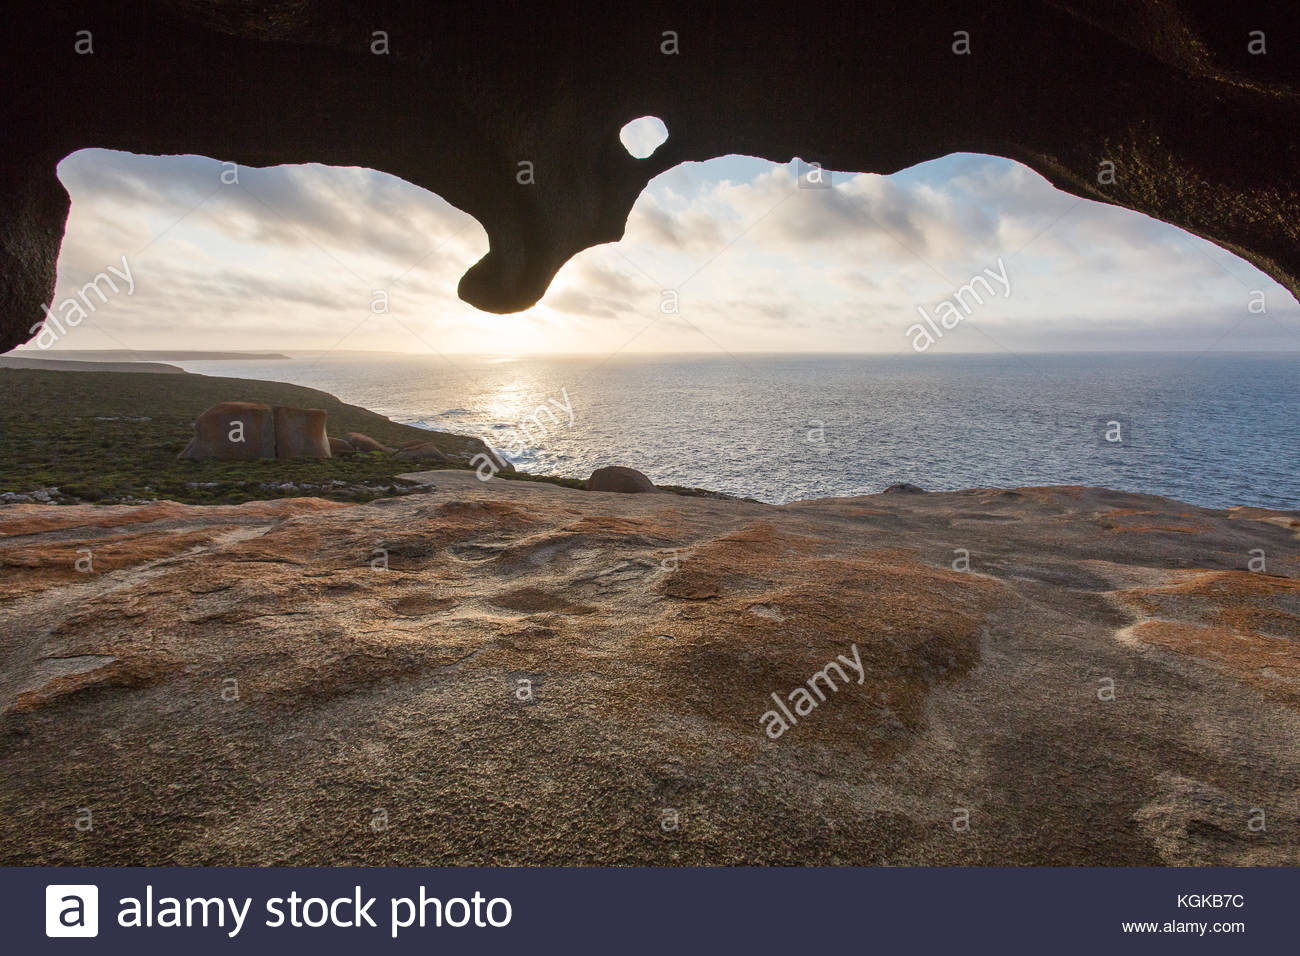 View from Remarkable Rocks, naturally formed granite boulders on the coast. - Stock Image